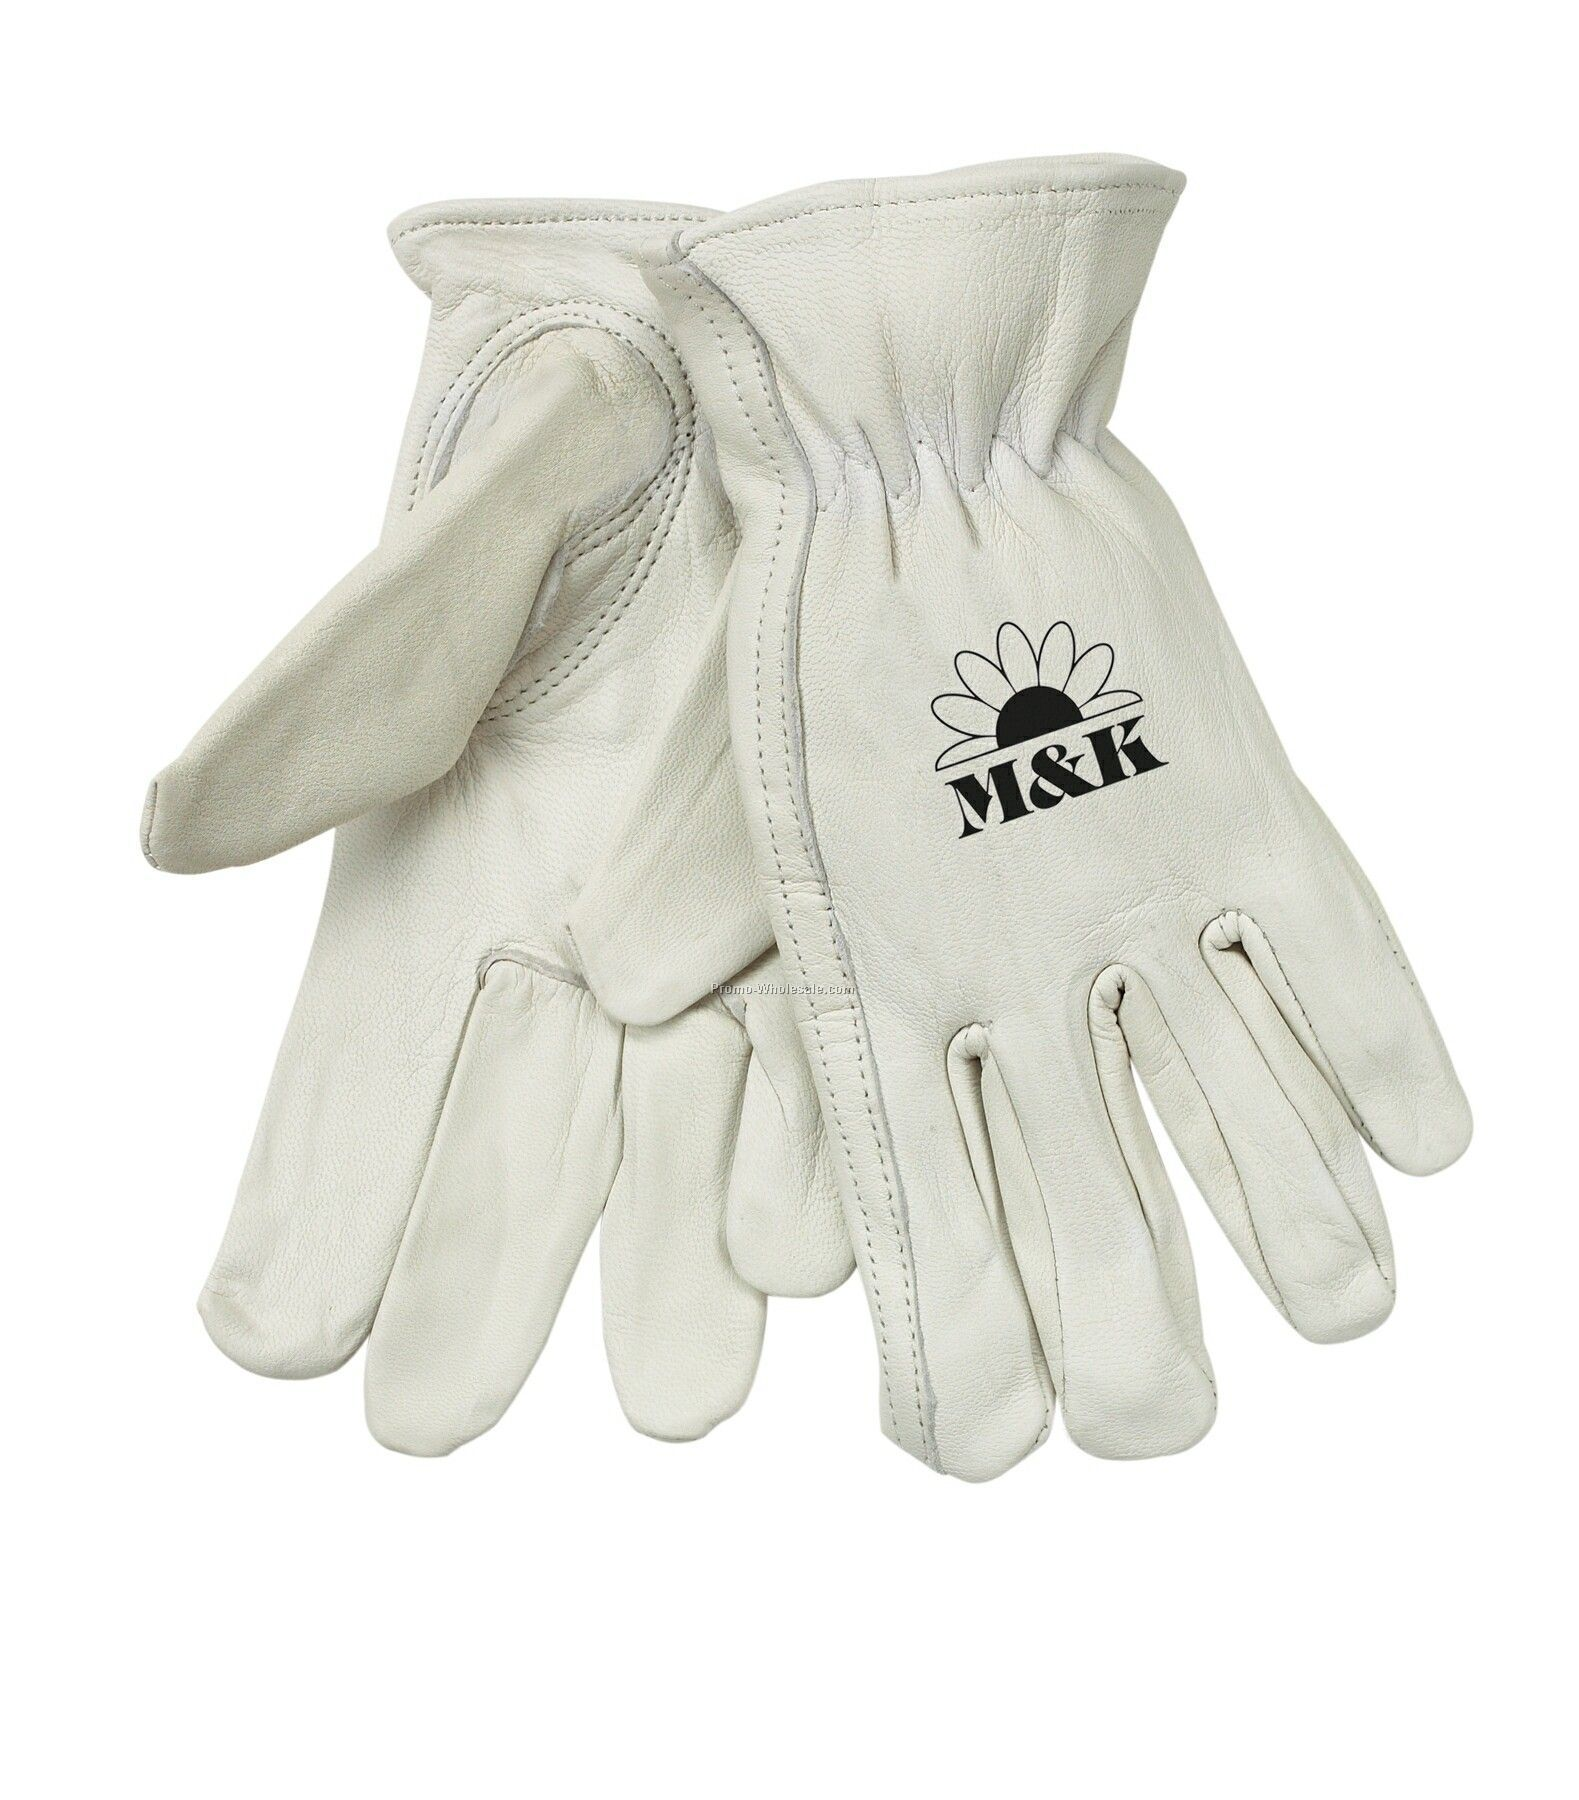 Kids Goatskin Knit Glove (One Size)